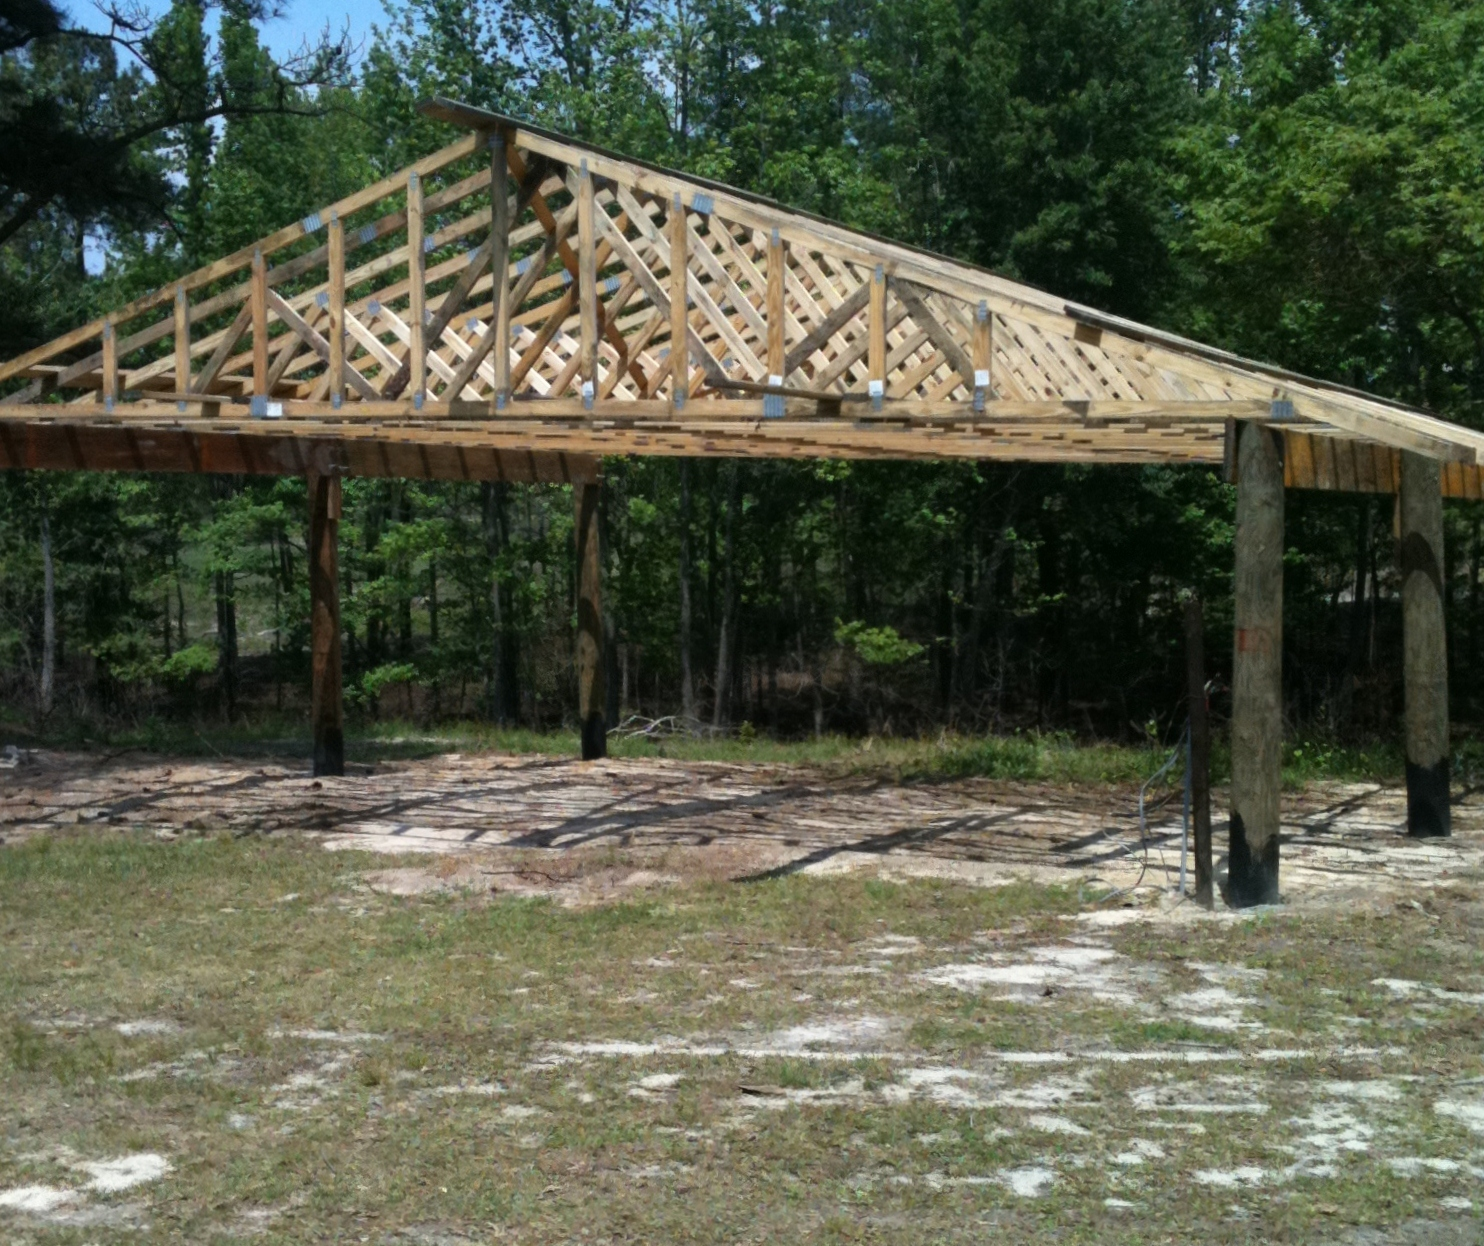 Pole Barn Construction : James free pole barn with loft plans